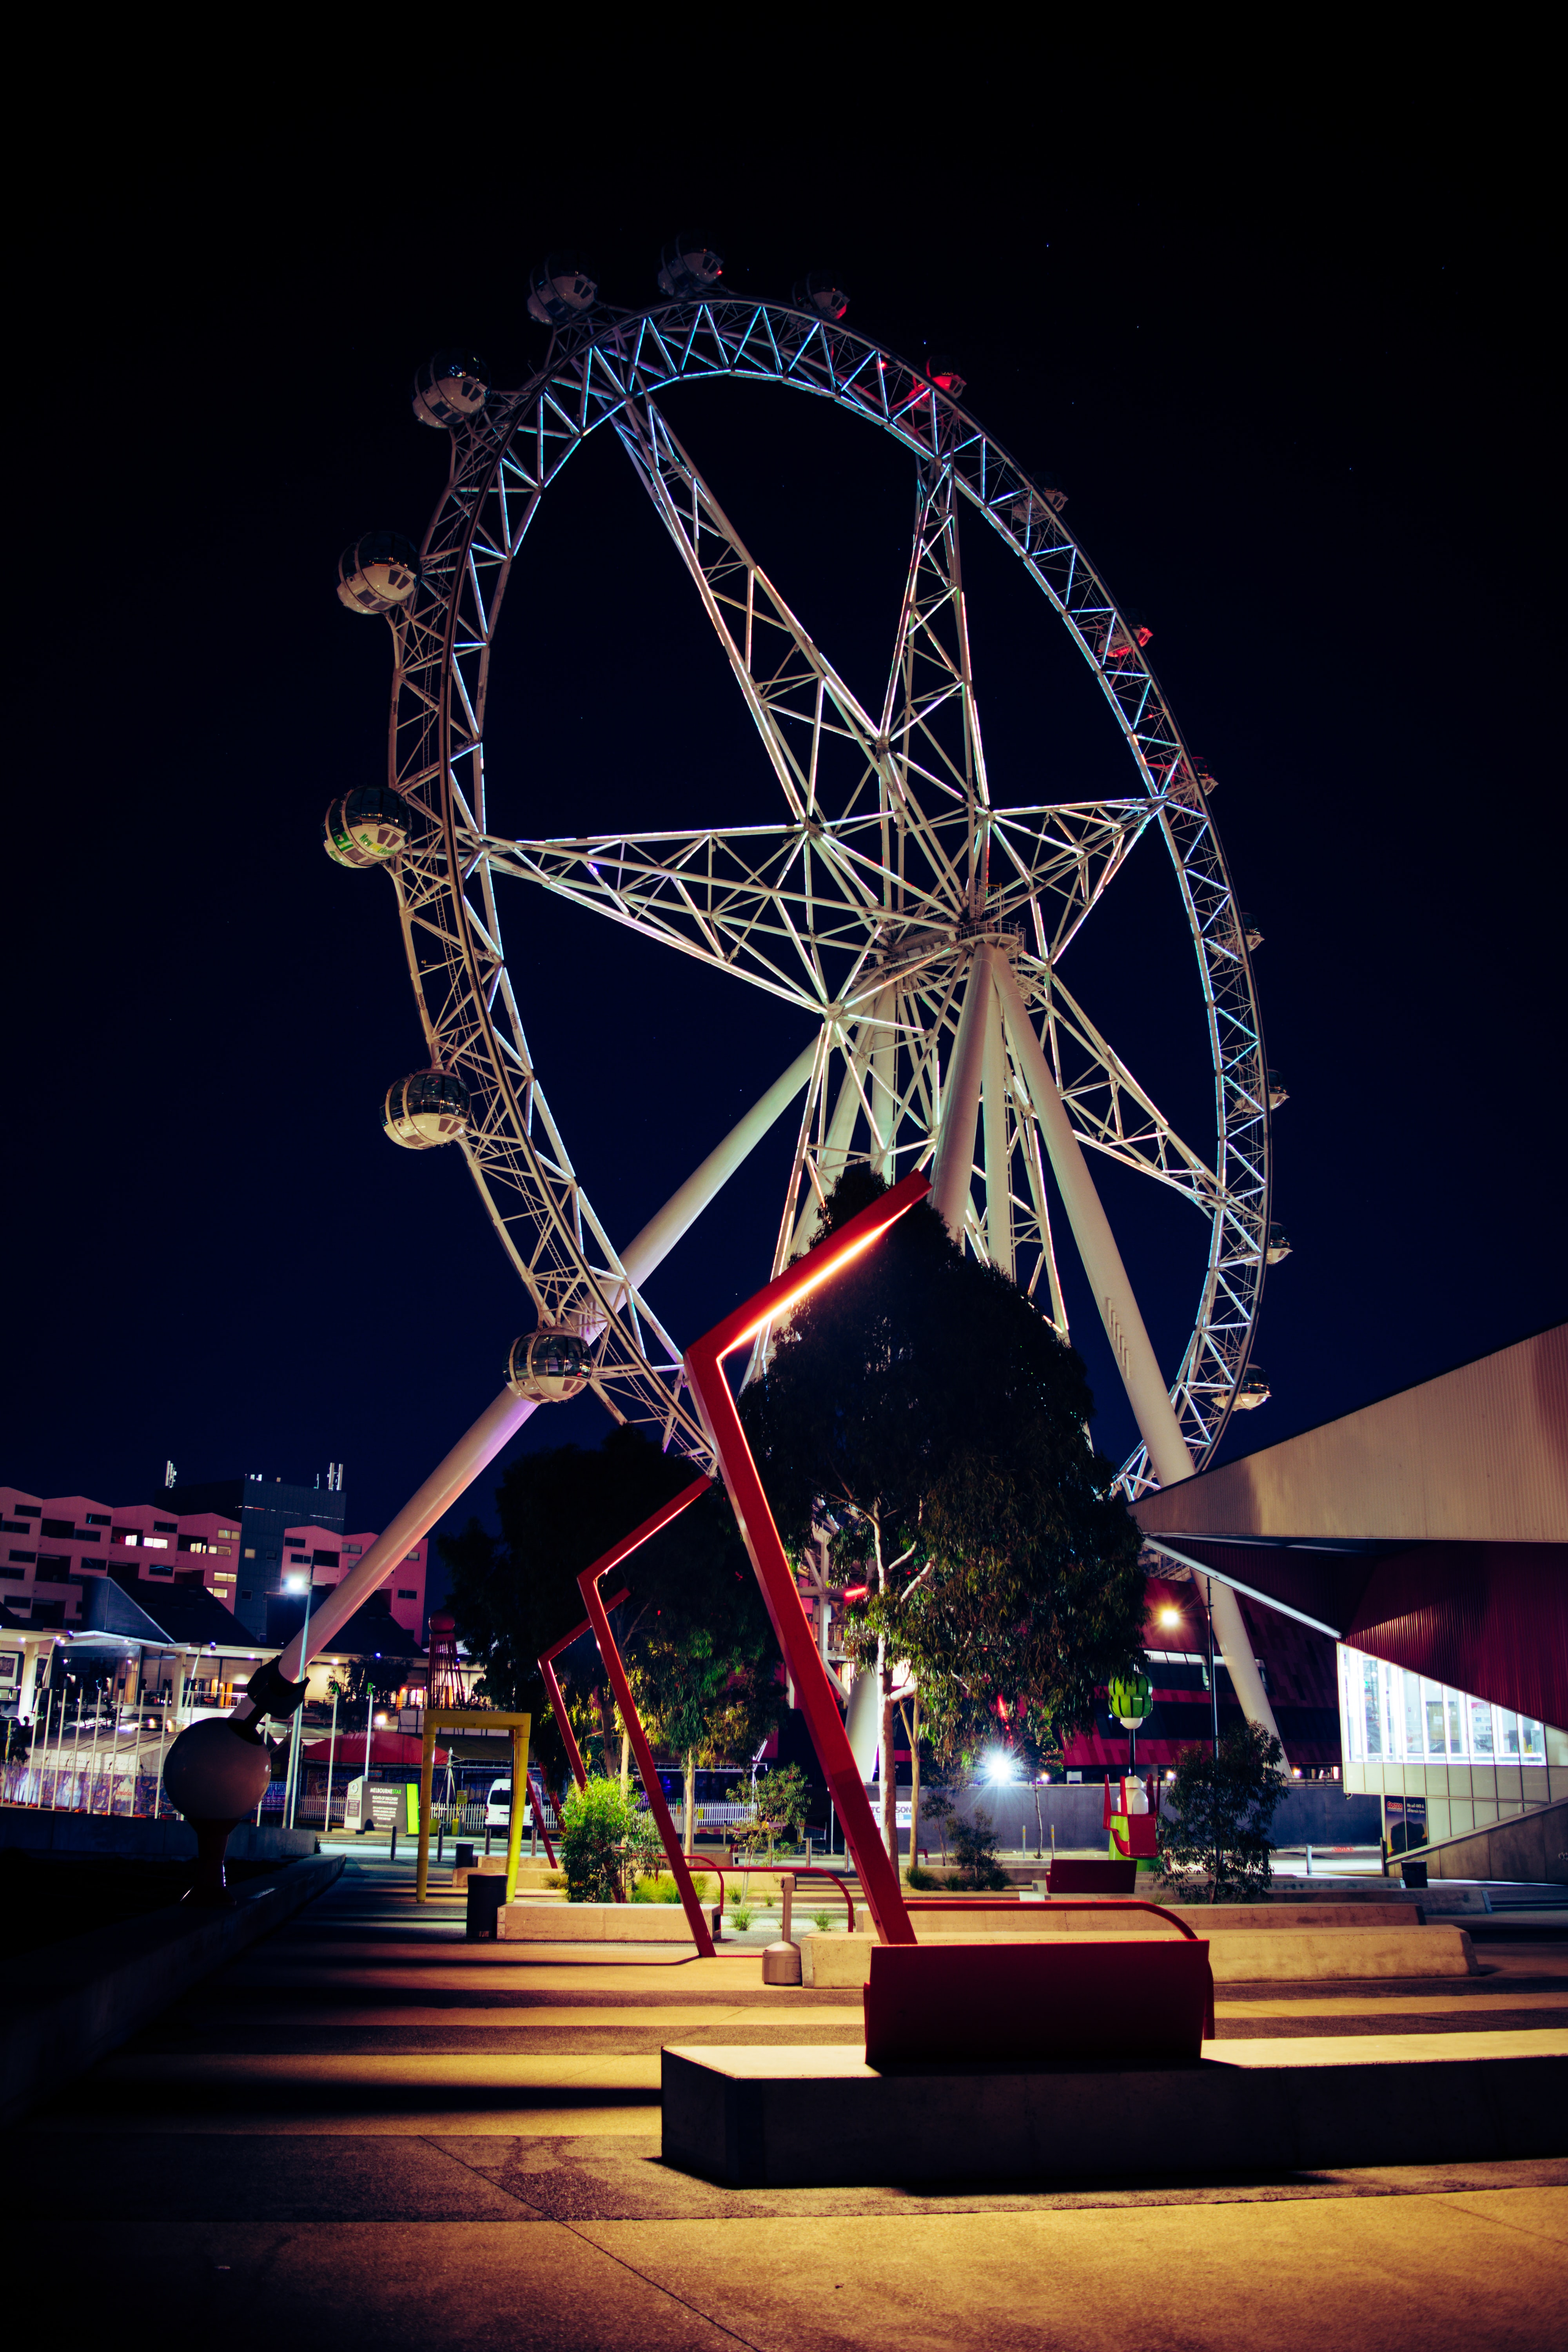 low angle photo of white and red ferris wheel